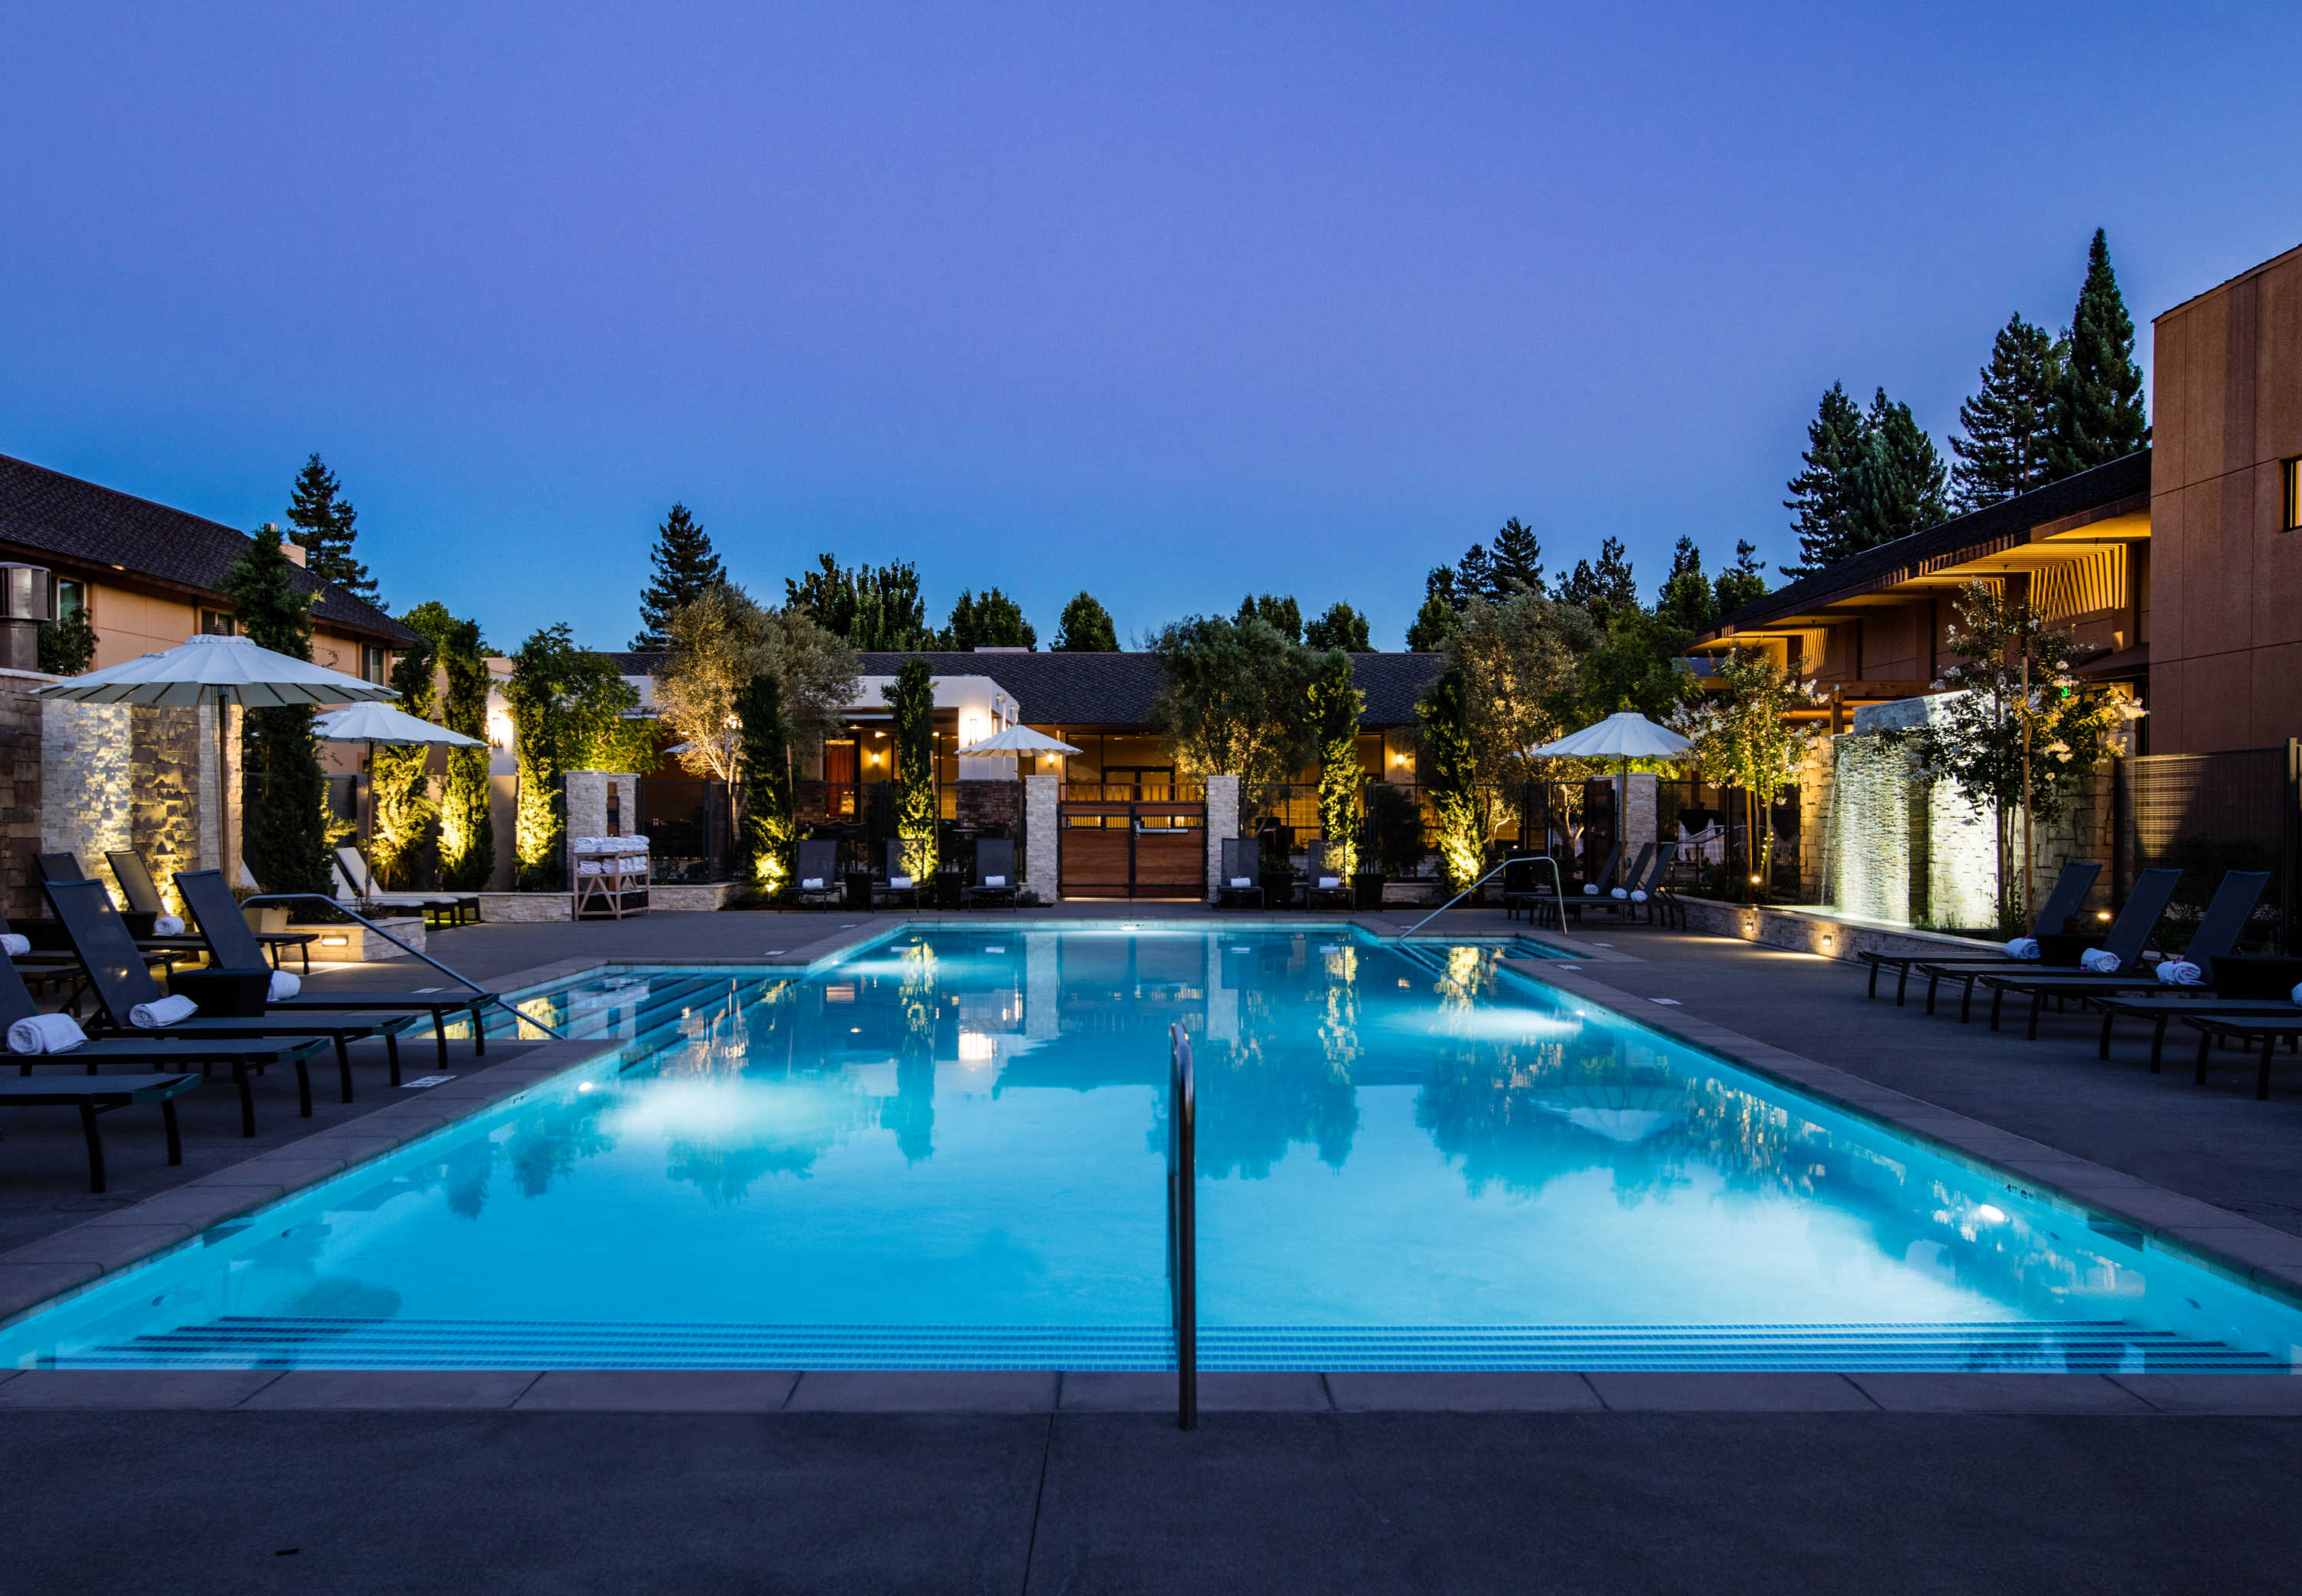 Http Www Marriott Com Hotels Travel Sfonp Napa Valley Marriott Hotel And Spa